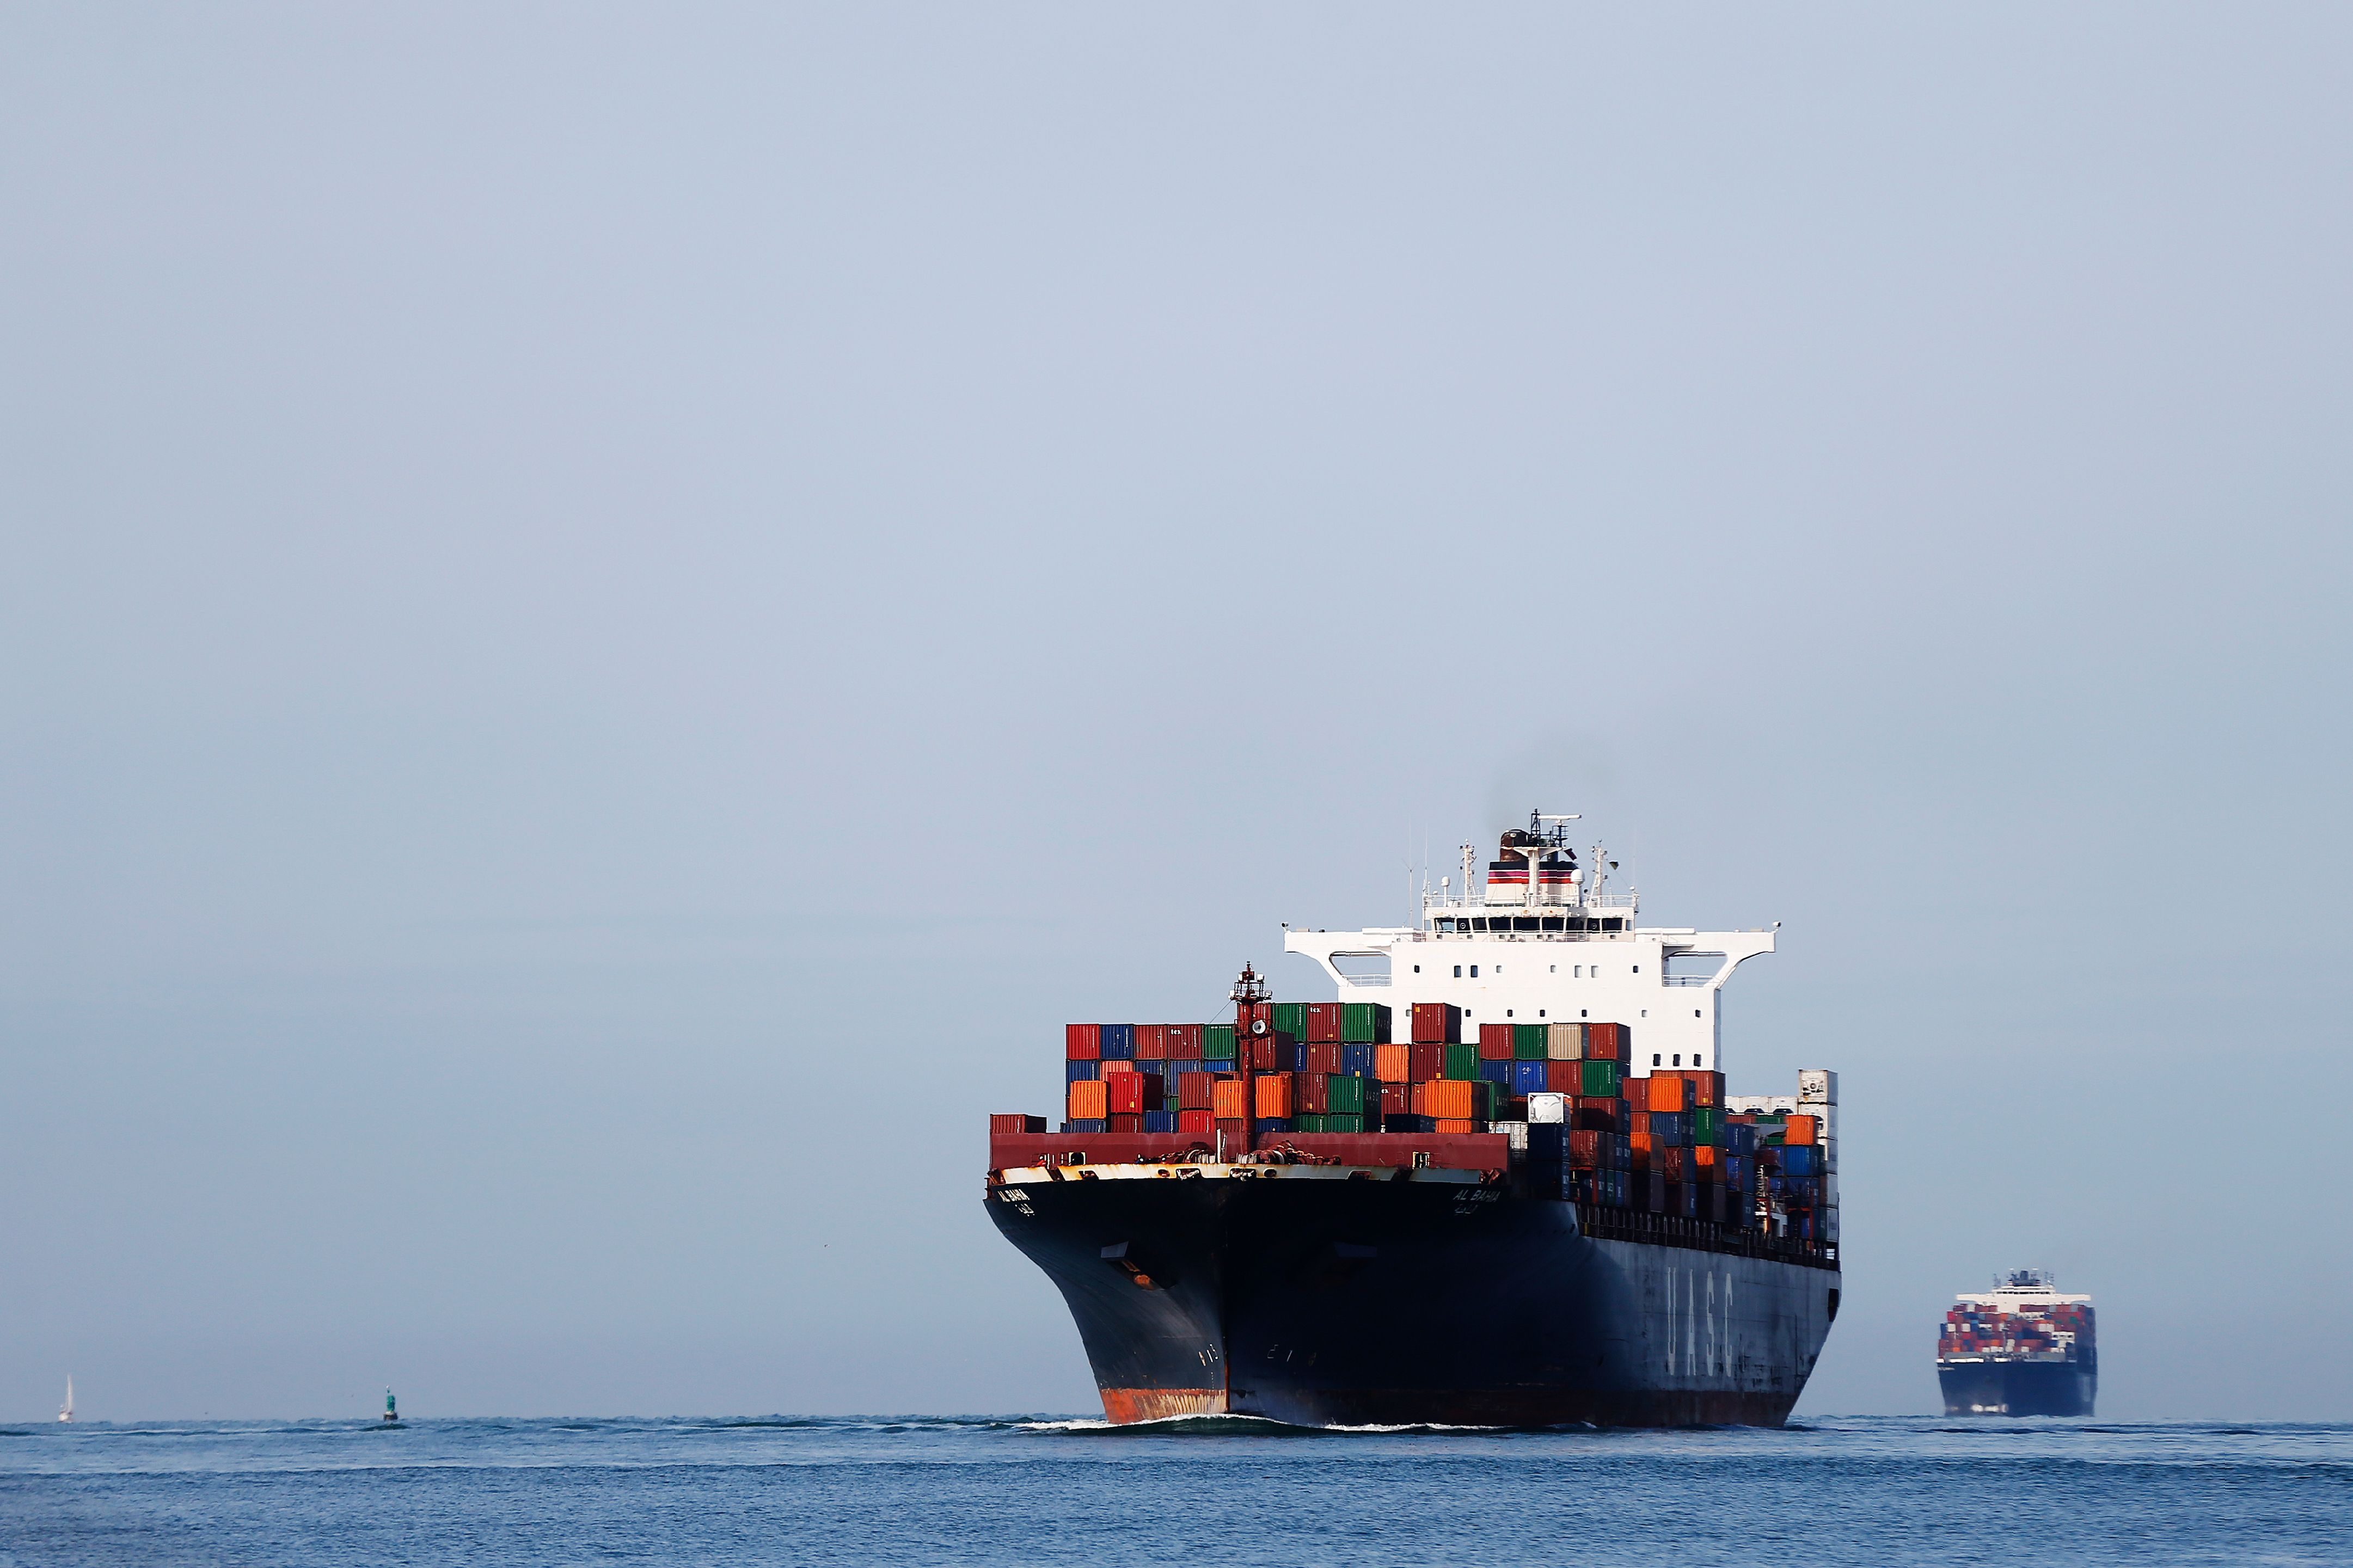 Should Ships Have Speed Limits?